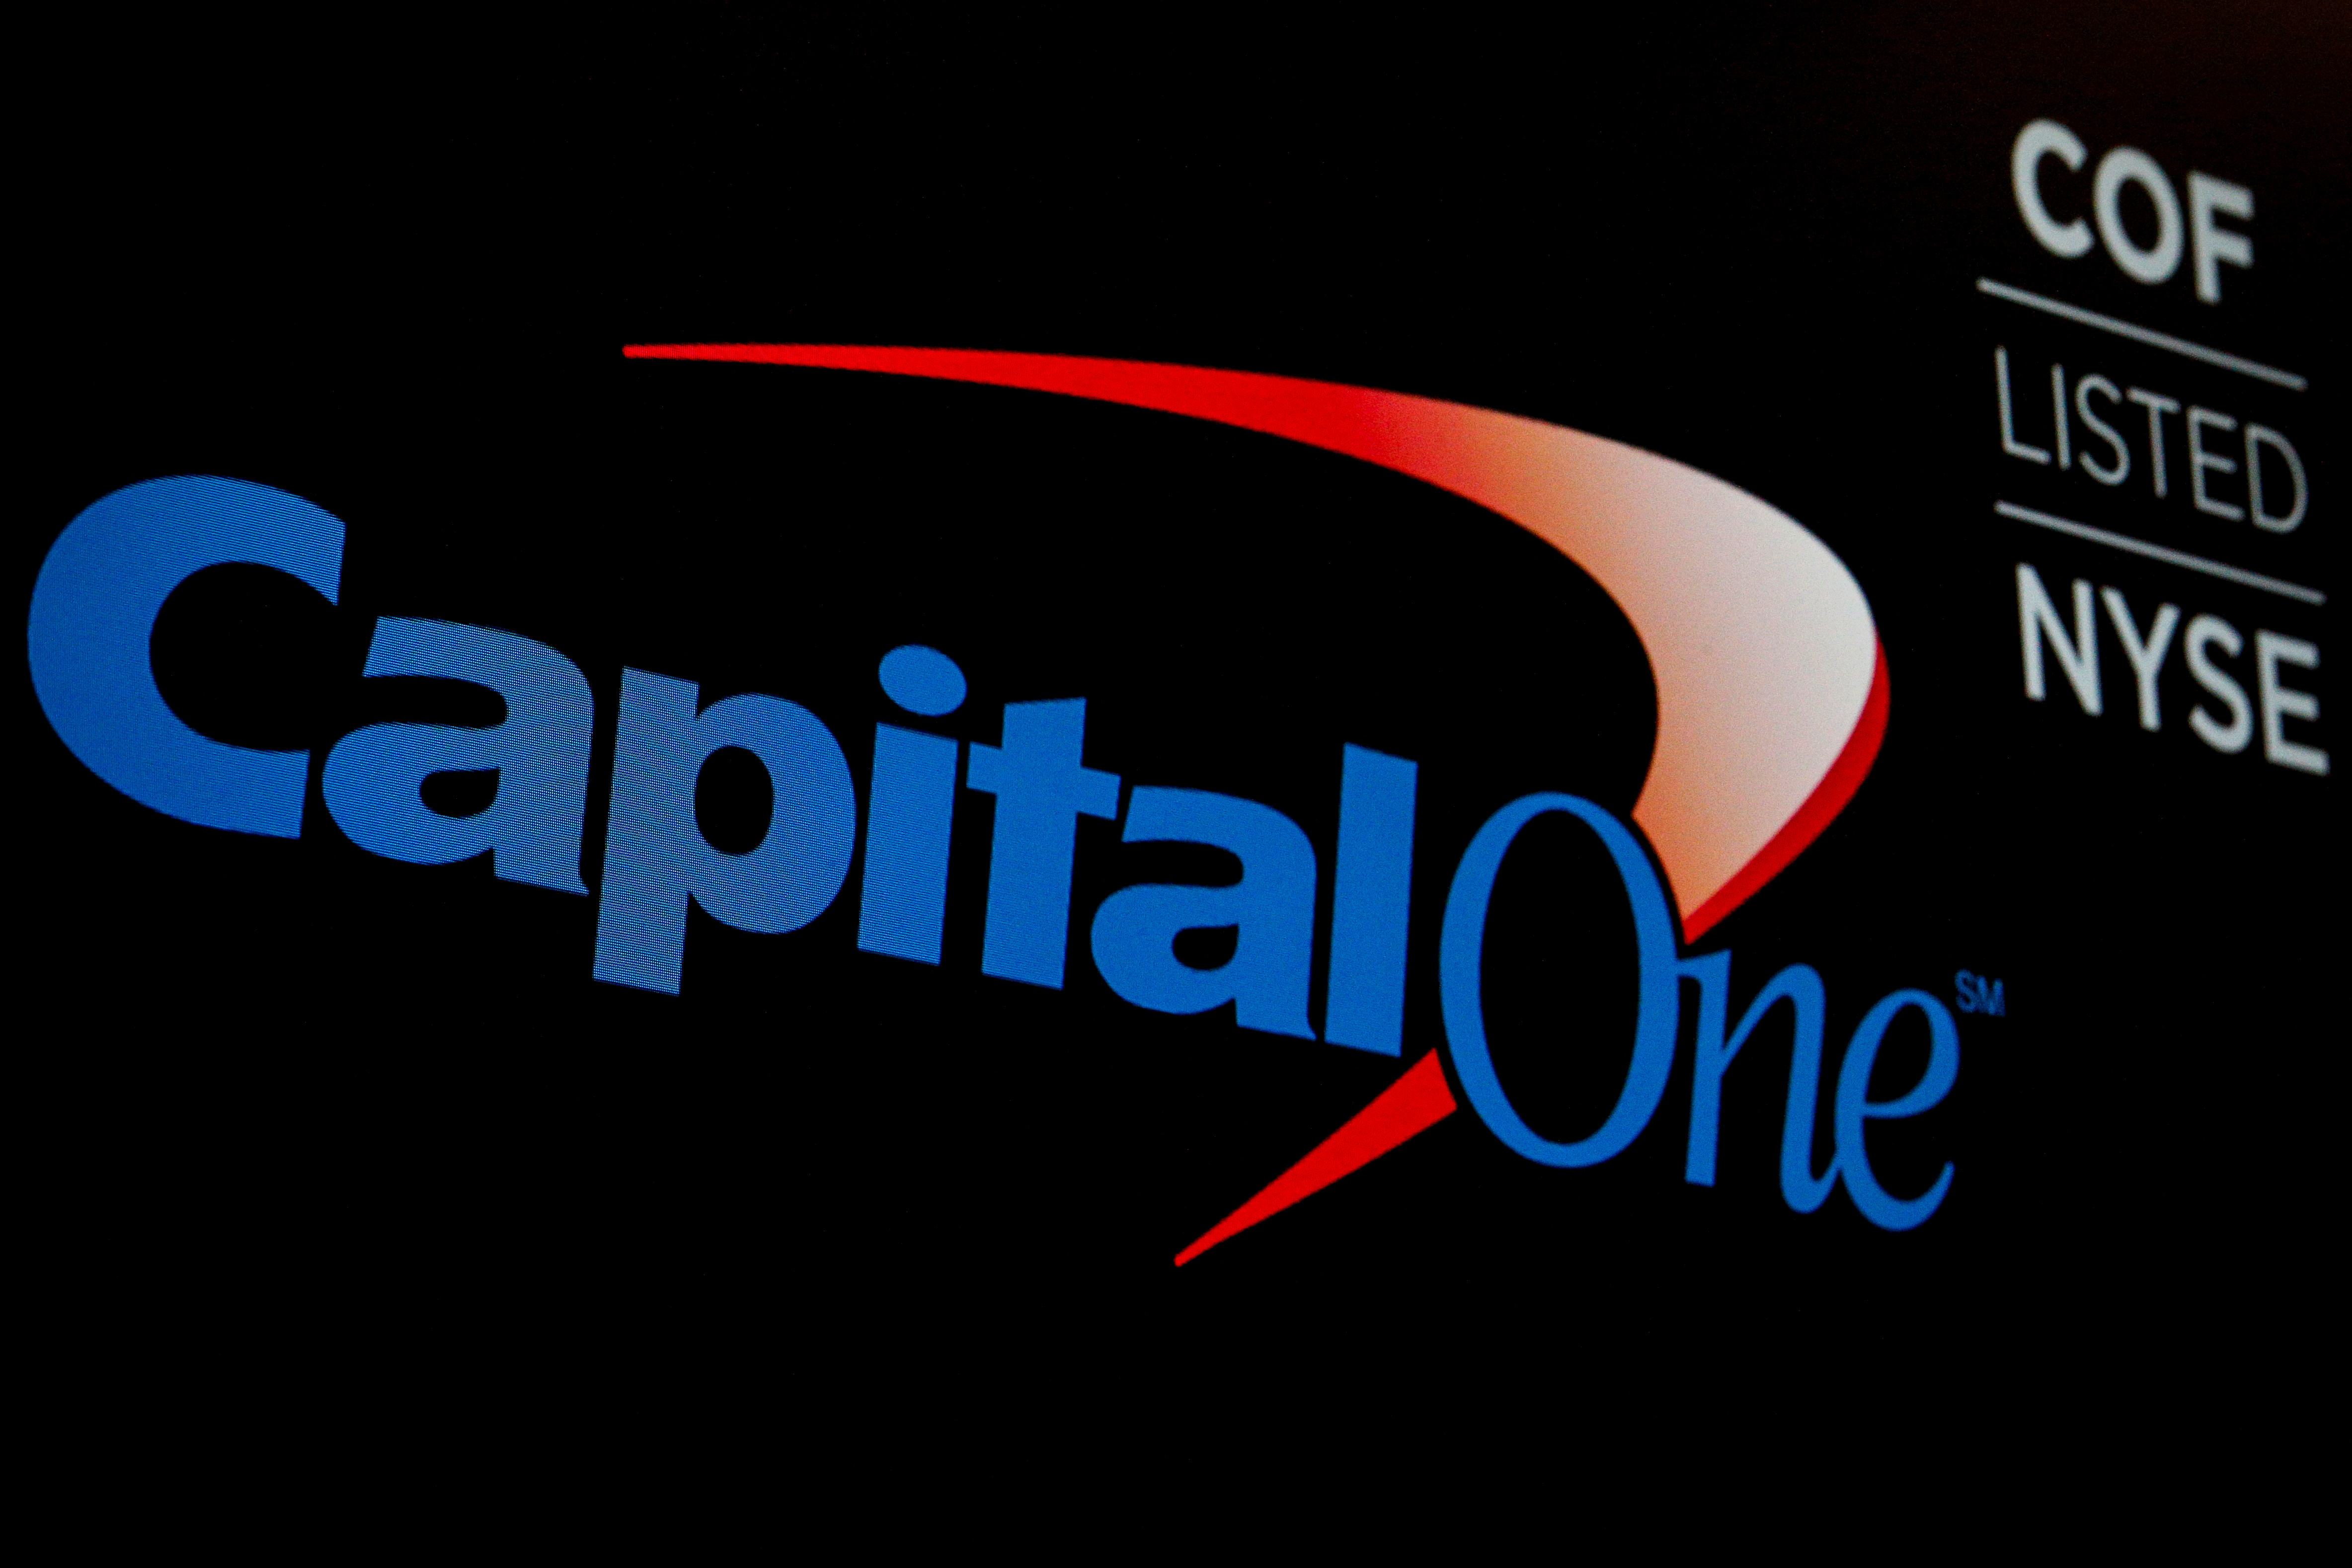 The logo and ticker for Capital One are displayed on a screen on the floor of the New York Stock Exchange (NYSE) in New York, U.S., May 21, 2018. REUTERS/Brendan McDermid/File Photo